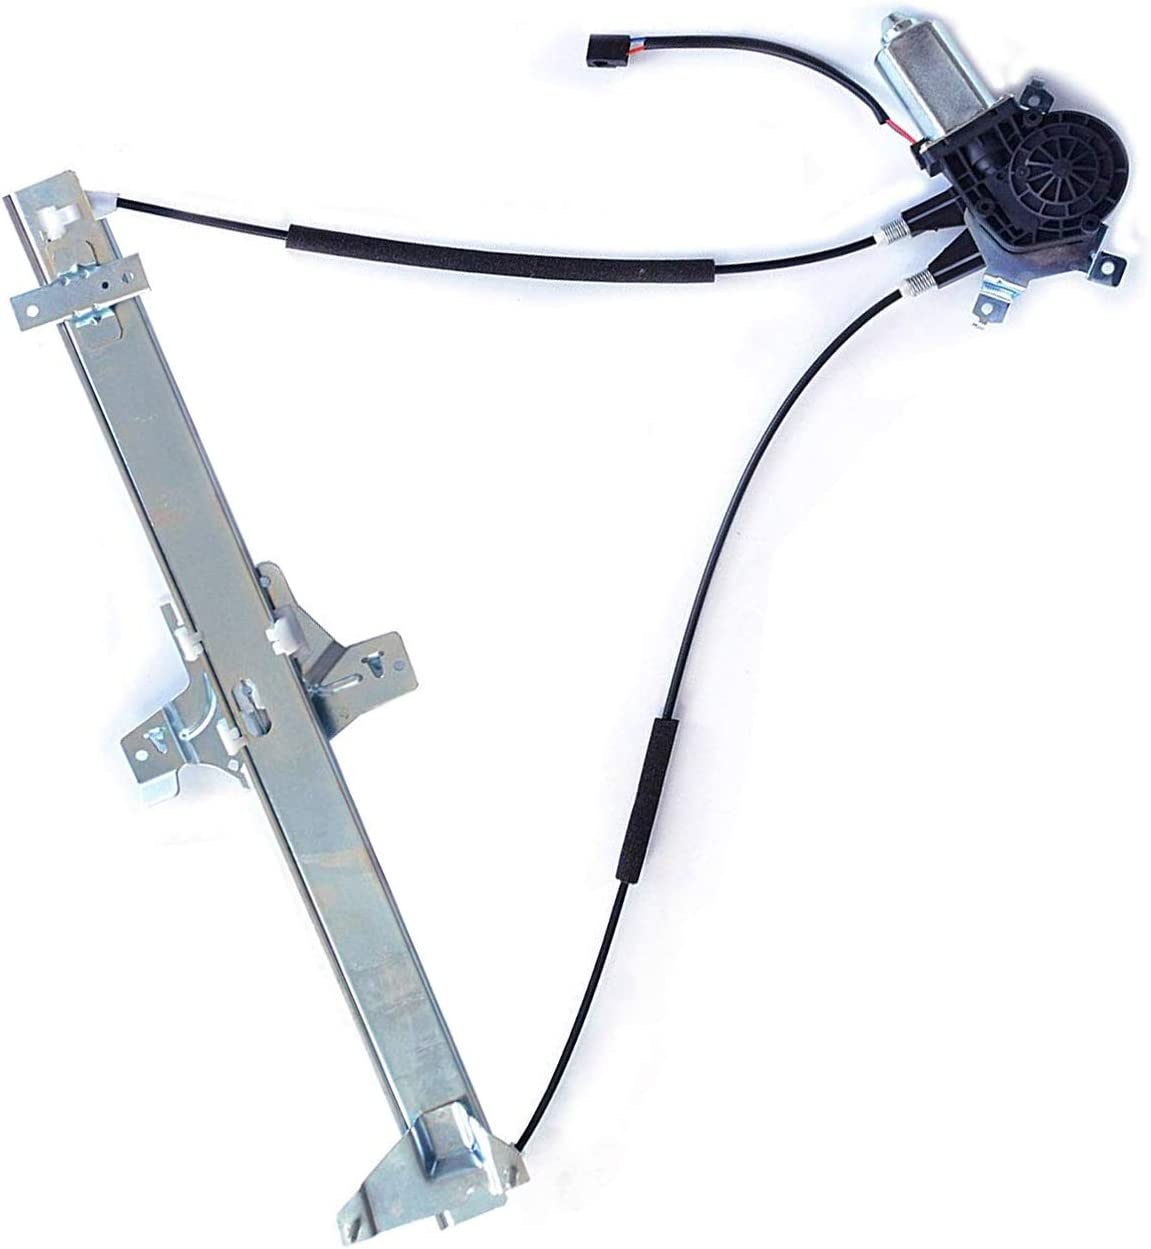 CUSTONEPARTS Front Driver Left Side Power Window Regulator W//Motor For 03-07 Accord Sedan